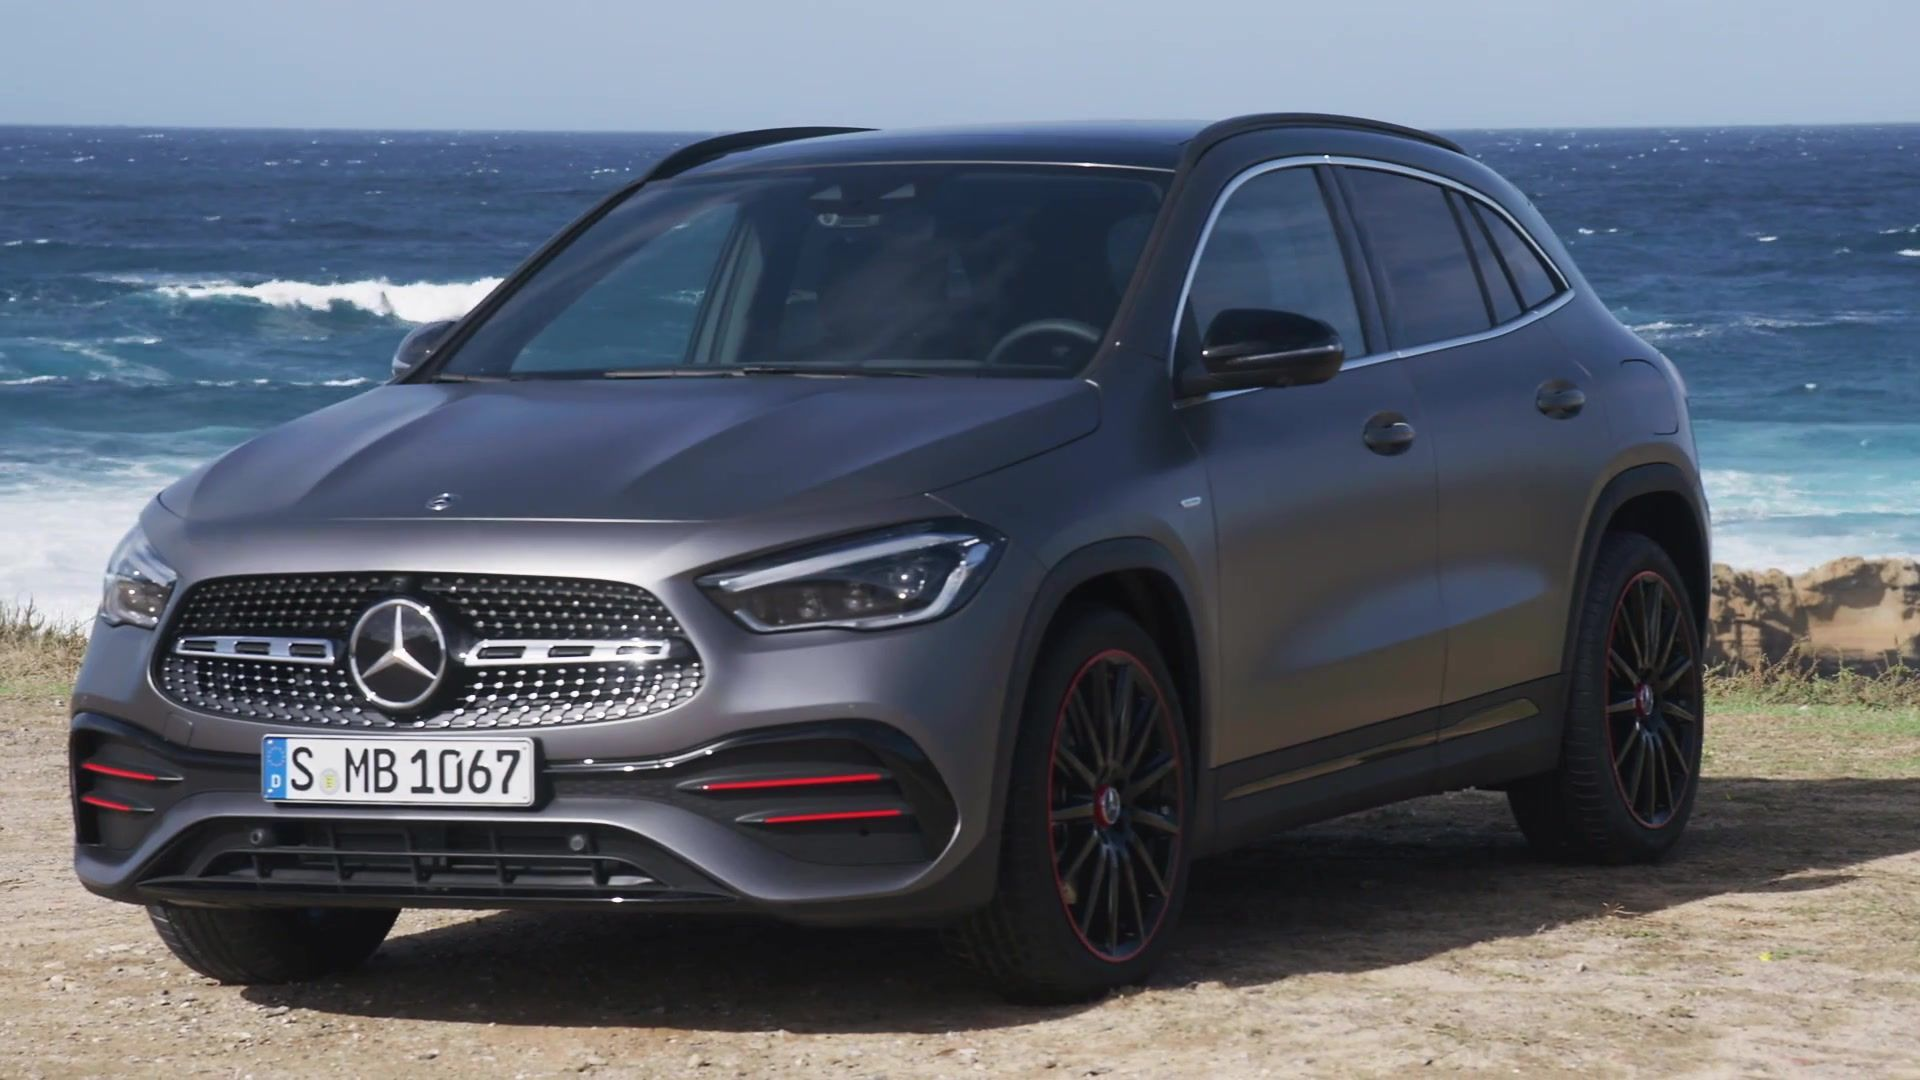 The new Mercedes-Benz GLA Edition Exterior Design